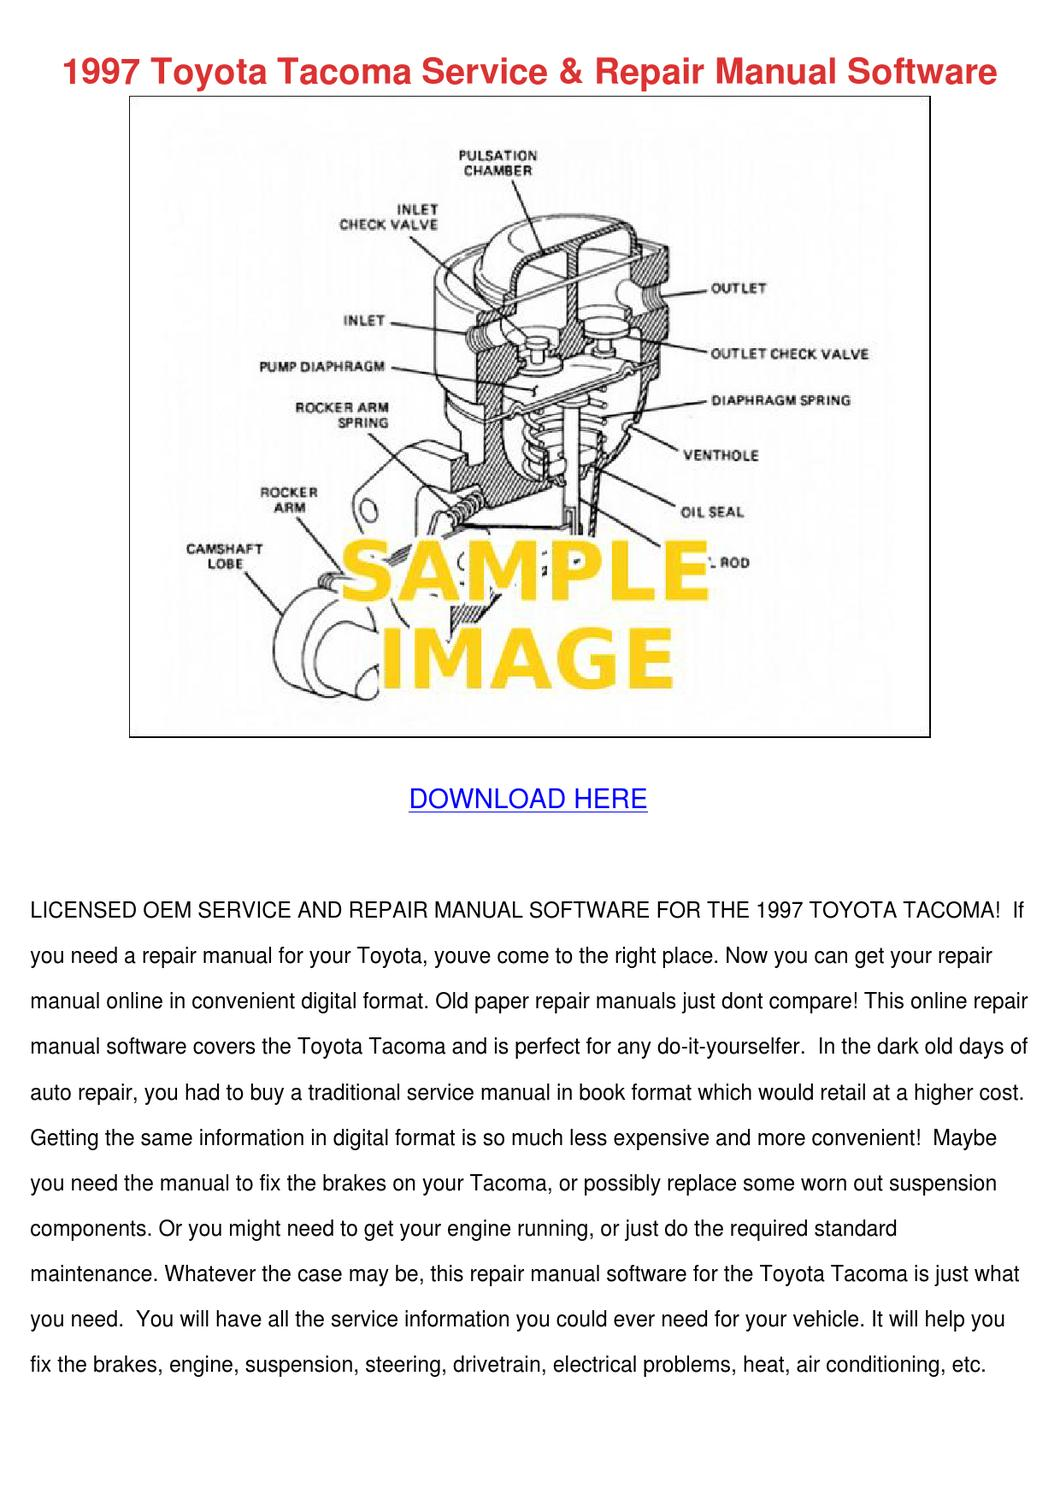 1997 toyota tacoma service repair manual soft by alexanderwiese issuu. Black Bedroom Furniture Sets. Home Design Ideas